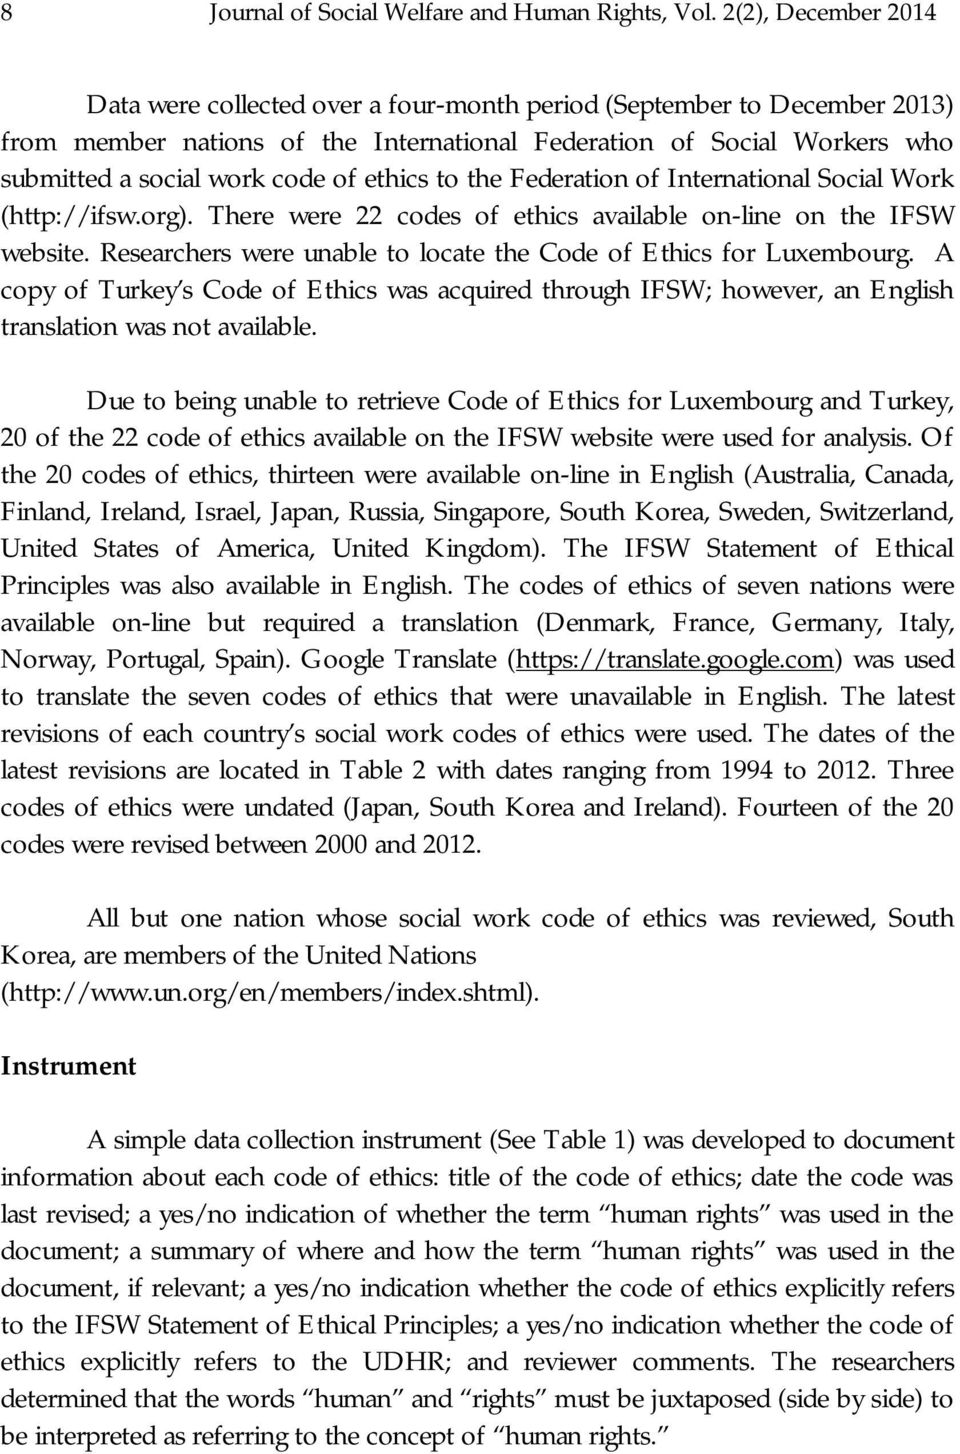 ethics to the Federation of International Social Work (http://ifsw.org). There were 22 codes of ethics available on-line on the IFSW website.